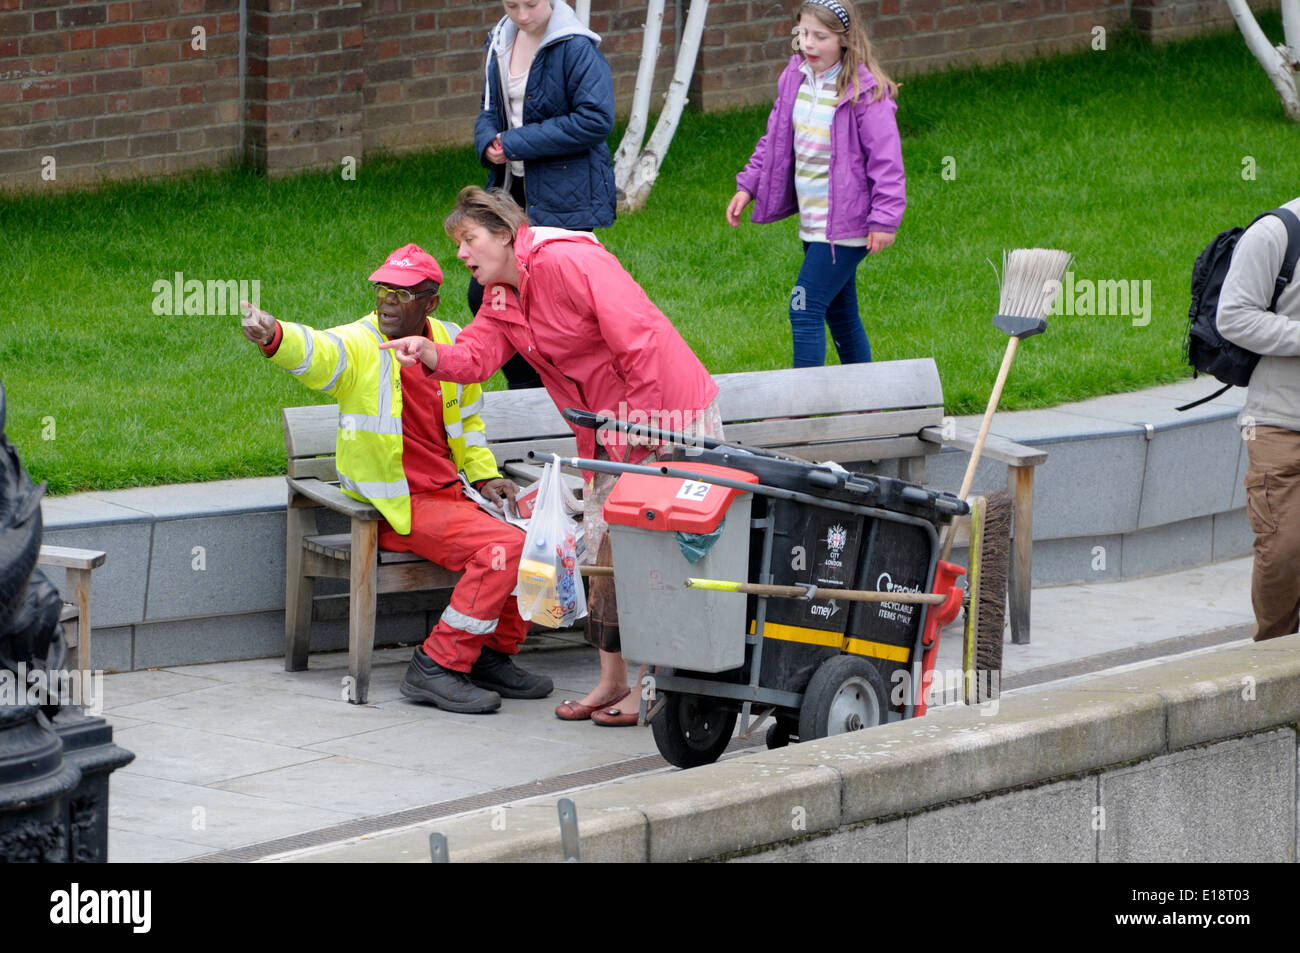 London, England, UK. Road sweeper reading a newspaper on a bench and giving directions to a tourist - Stock Image